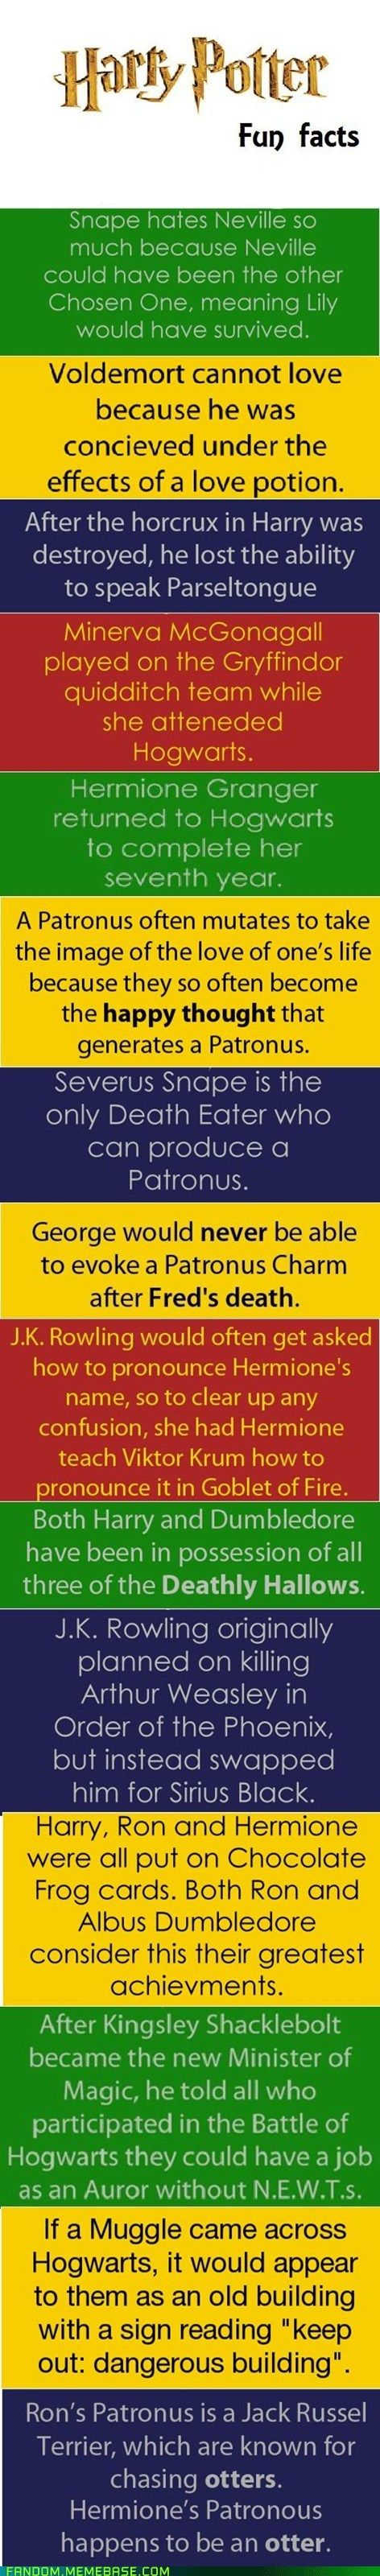 And now I want to reread the series.